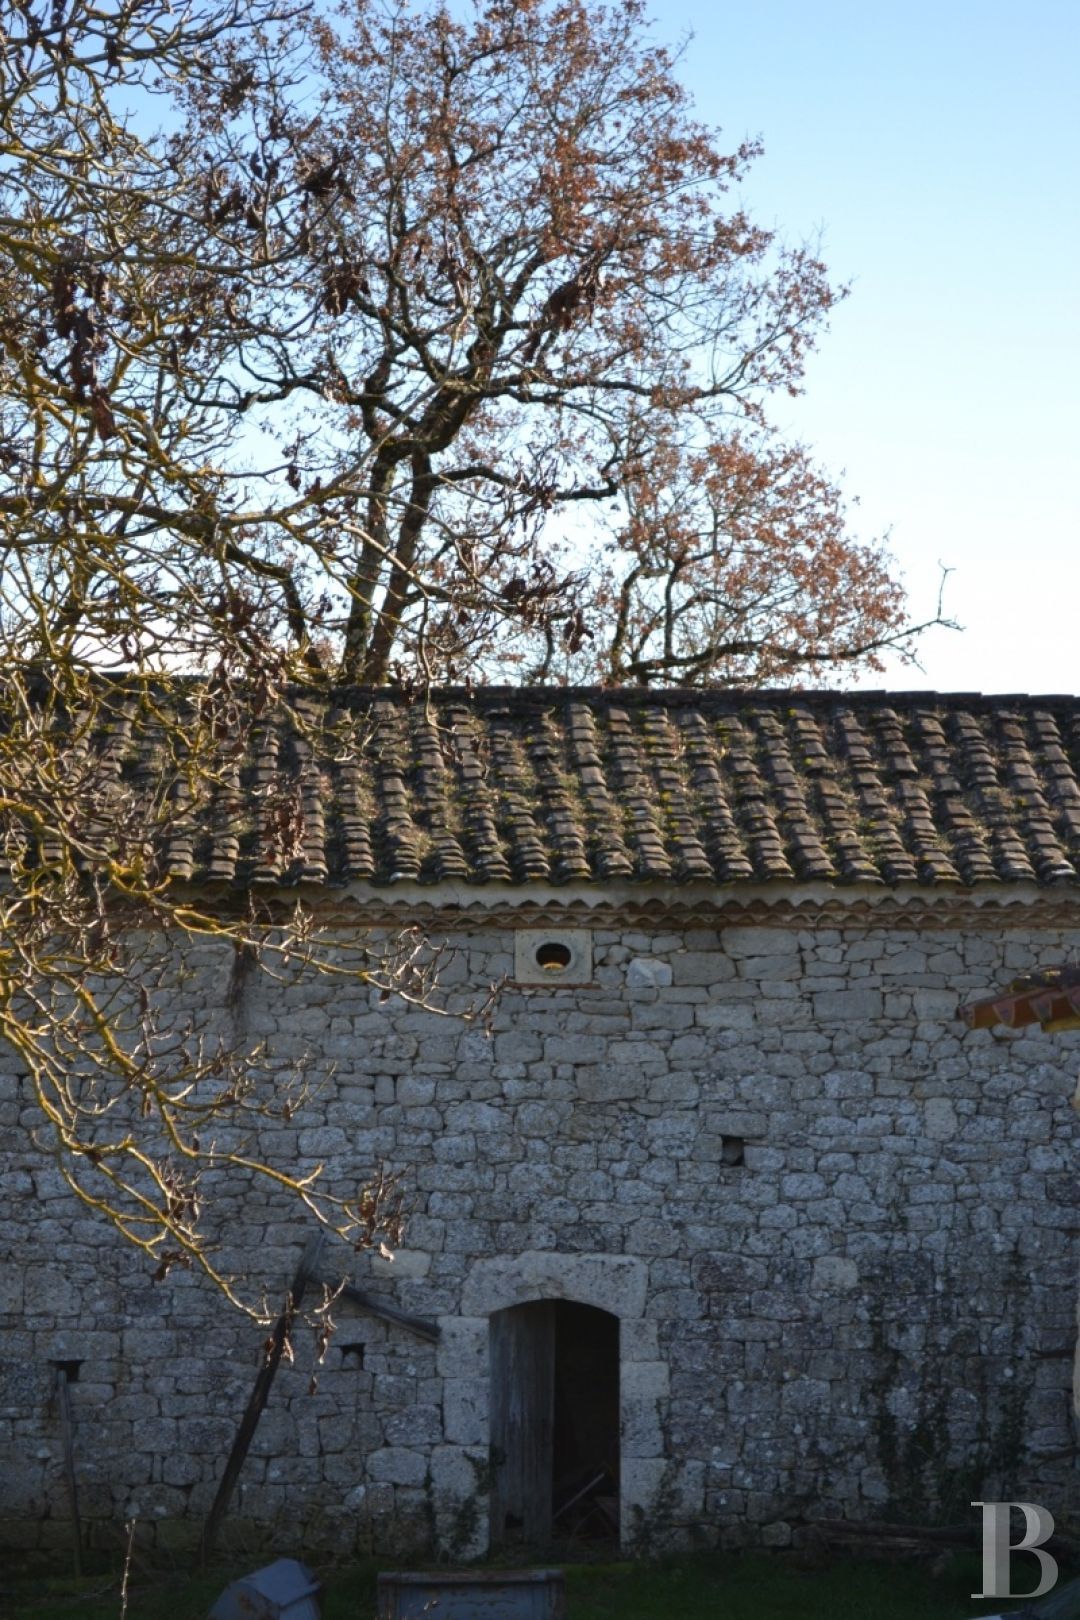 property for sale France aquitaine stronghold house - 12 zoom